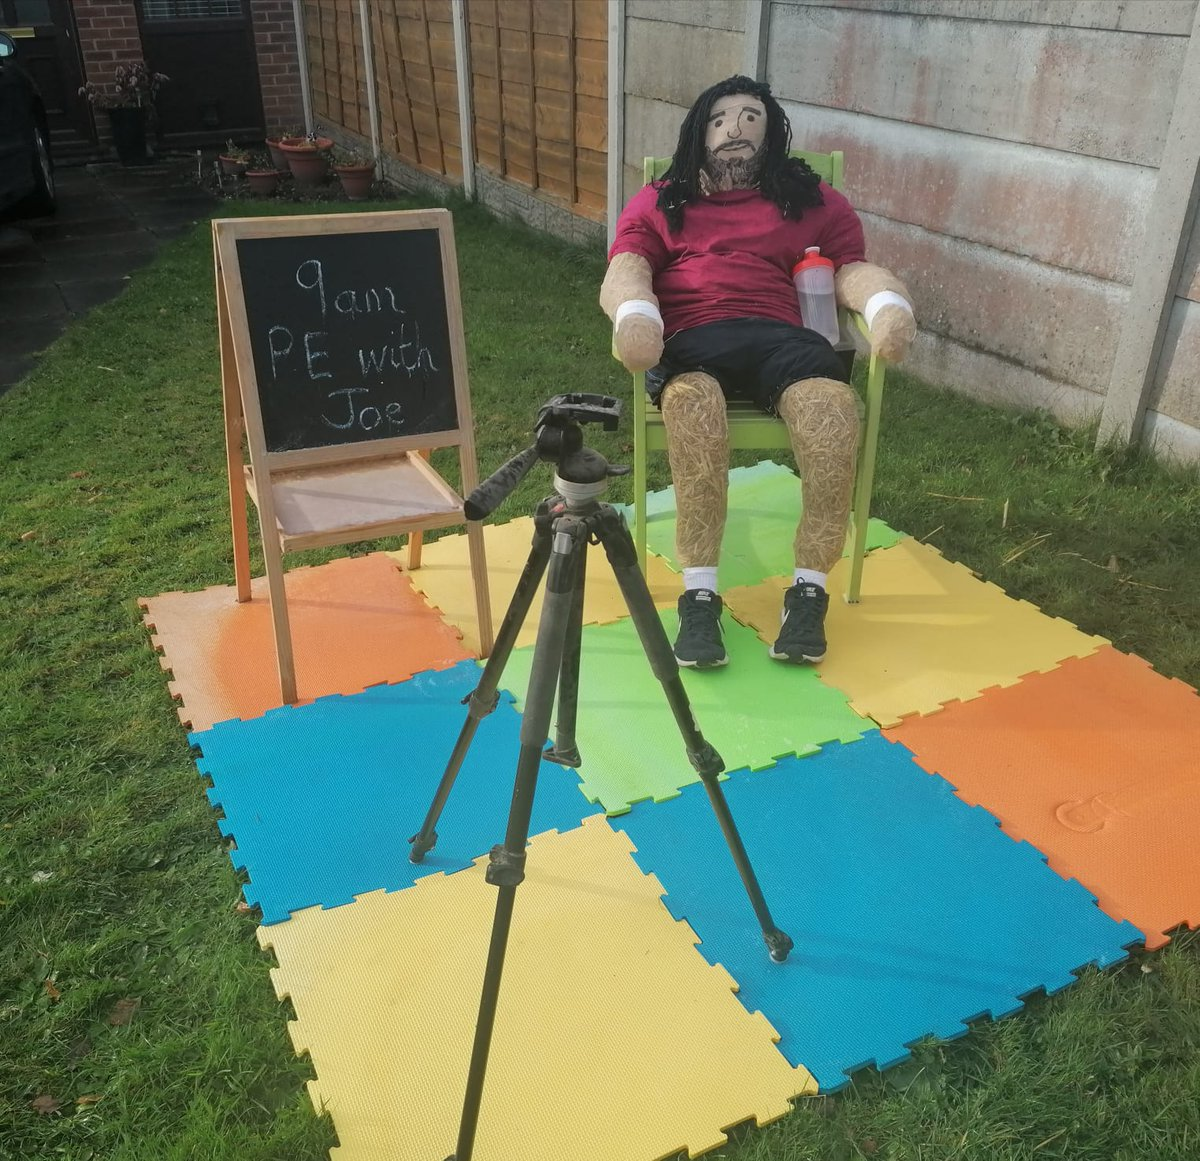 My Joe Wicks entry to the St Helens Scarecrow Festival raising money for Willowbrook Hospice #saveourhospice @thebodycoach https://t.co/lXBoSG6gOP